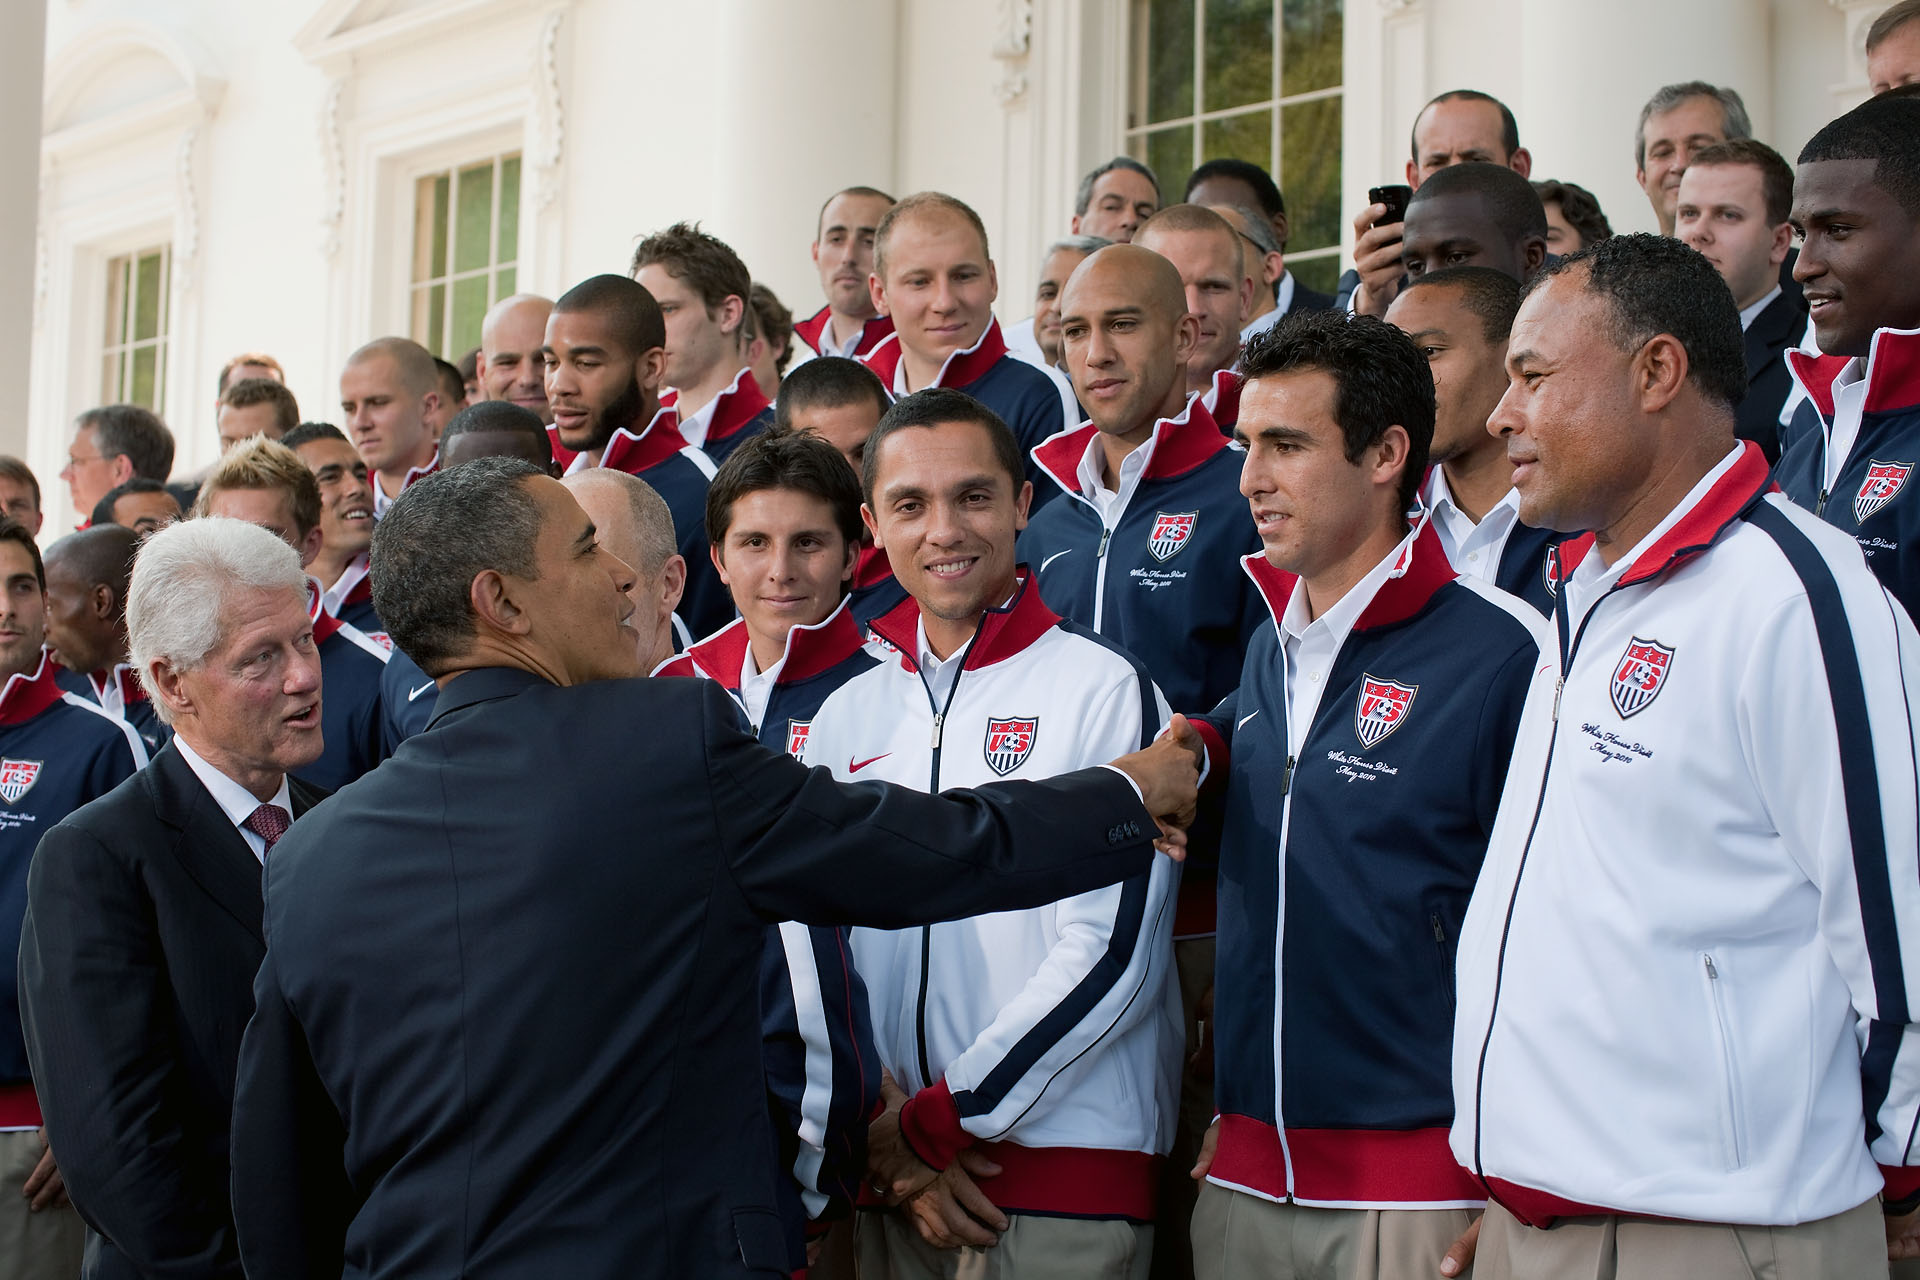 President Obama and President Clinton Shake Hands with the US World Cup Team